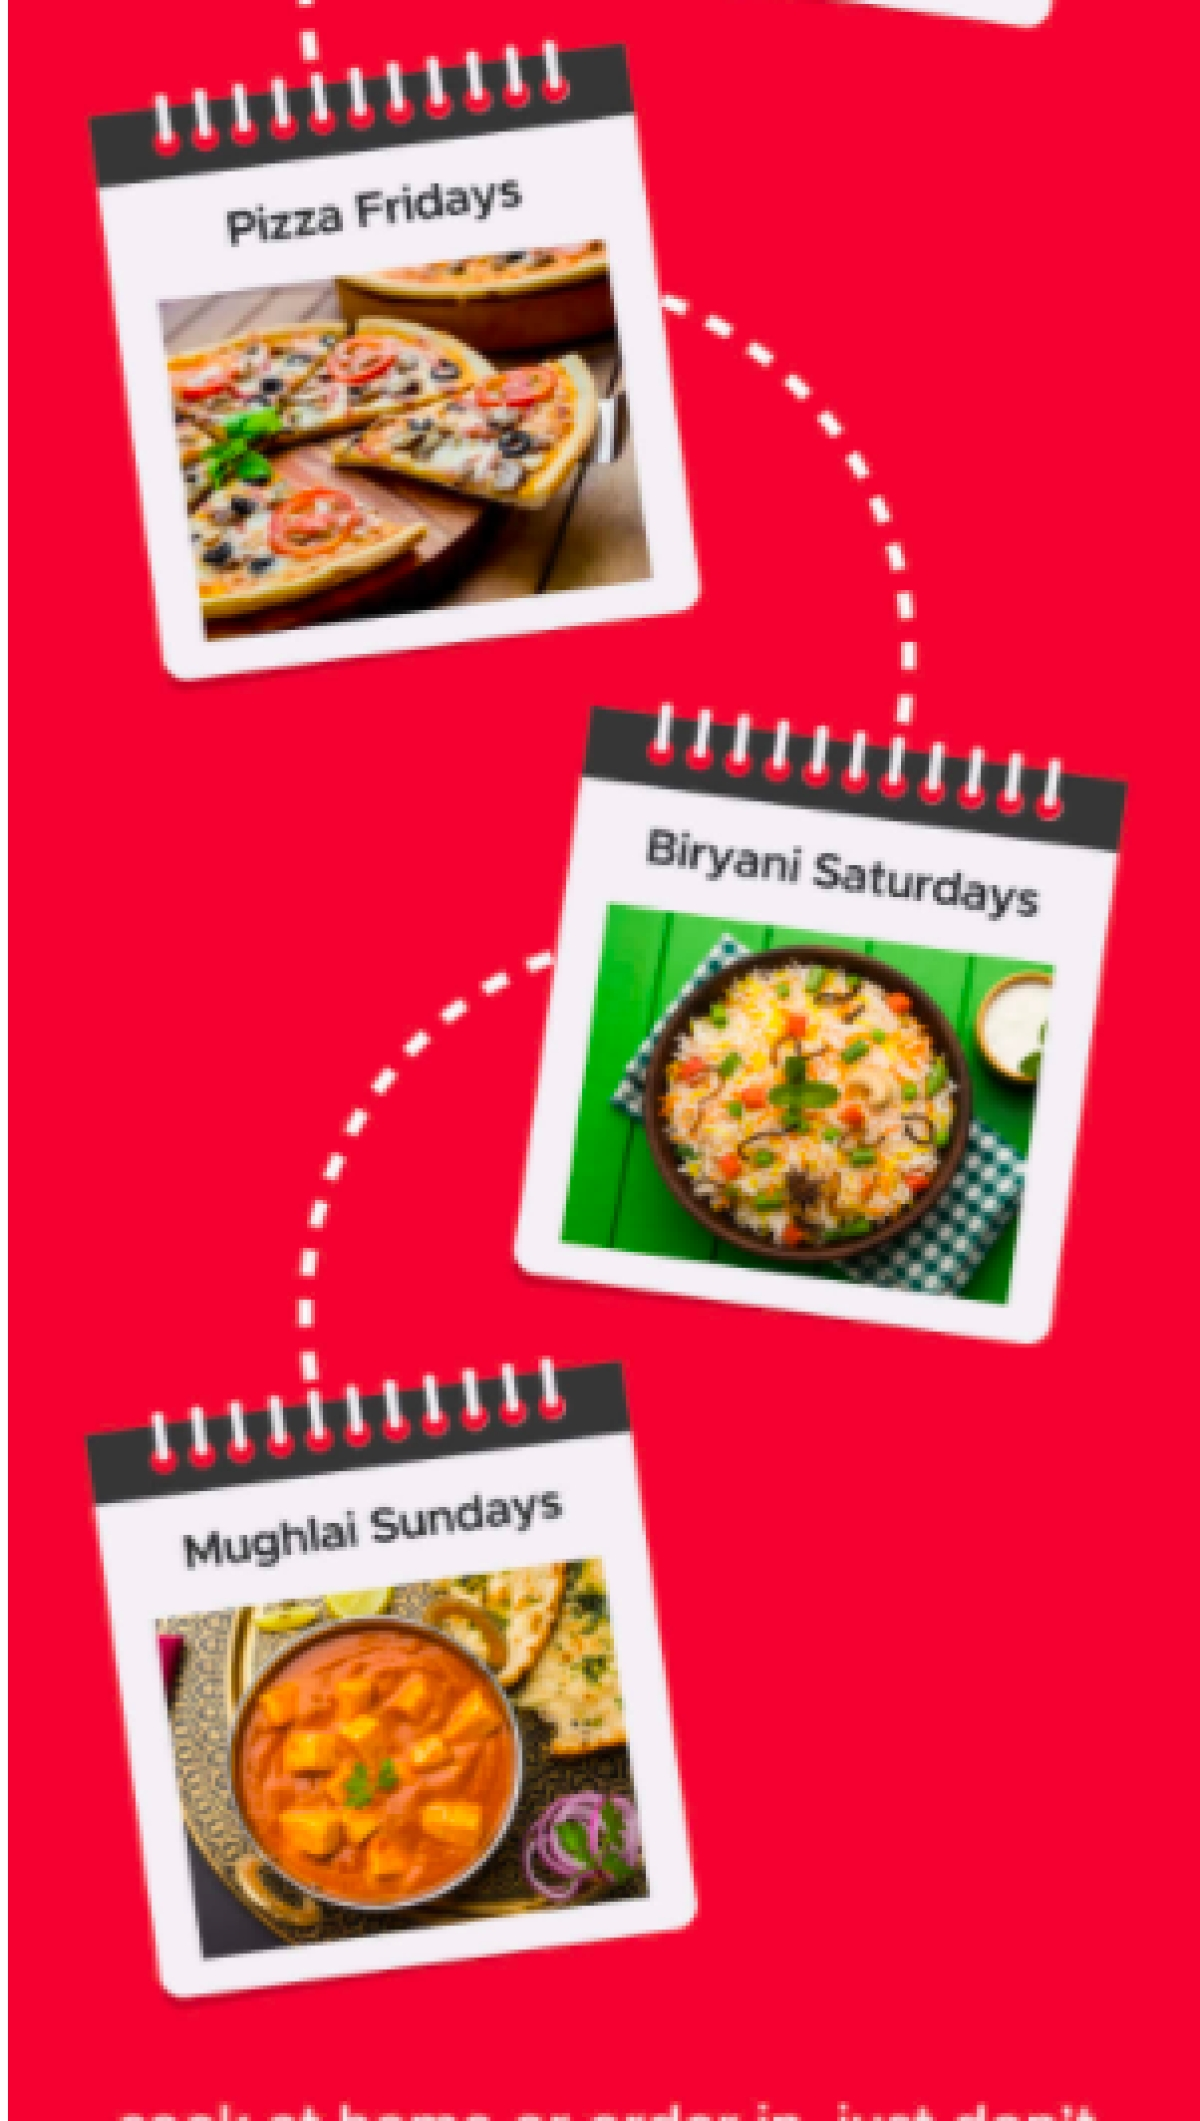 Zomato's latest mailer campaign attempts to solve the world's most difficult question...